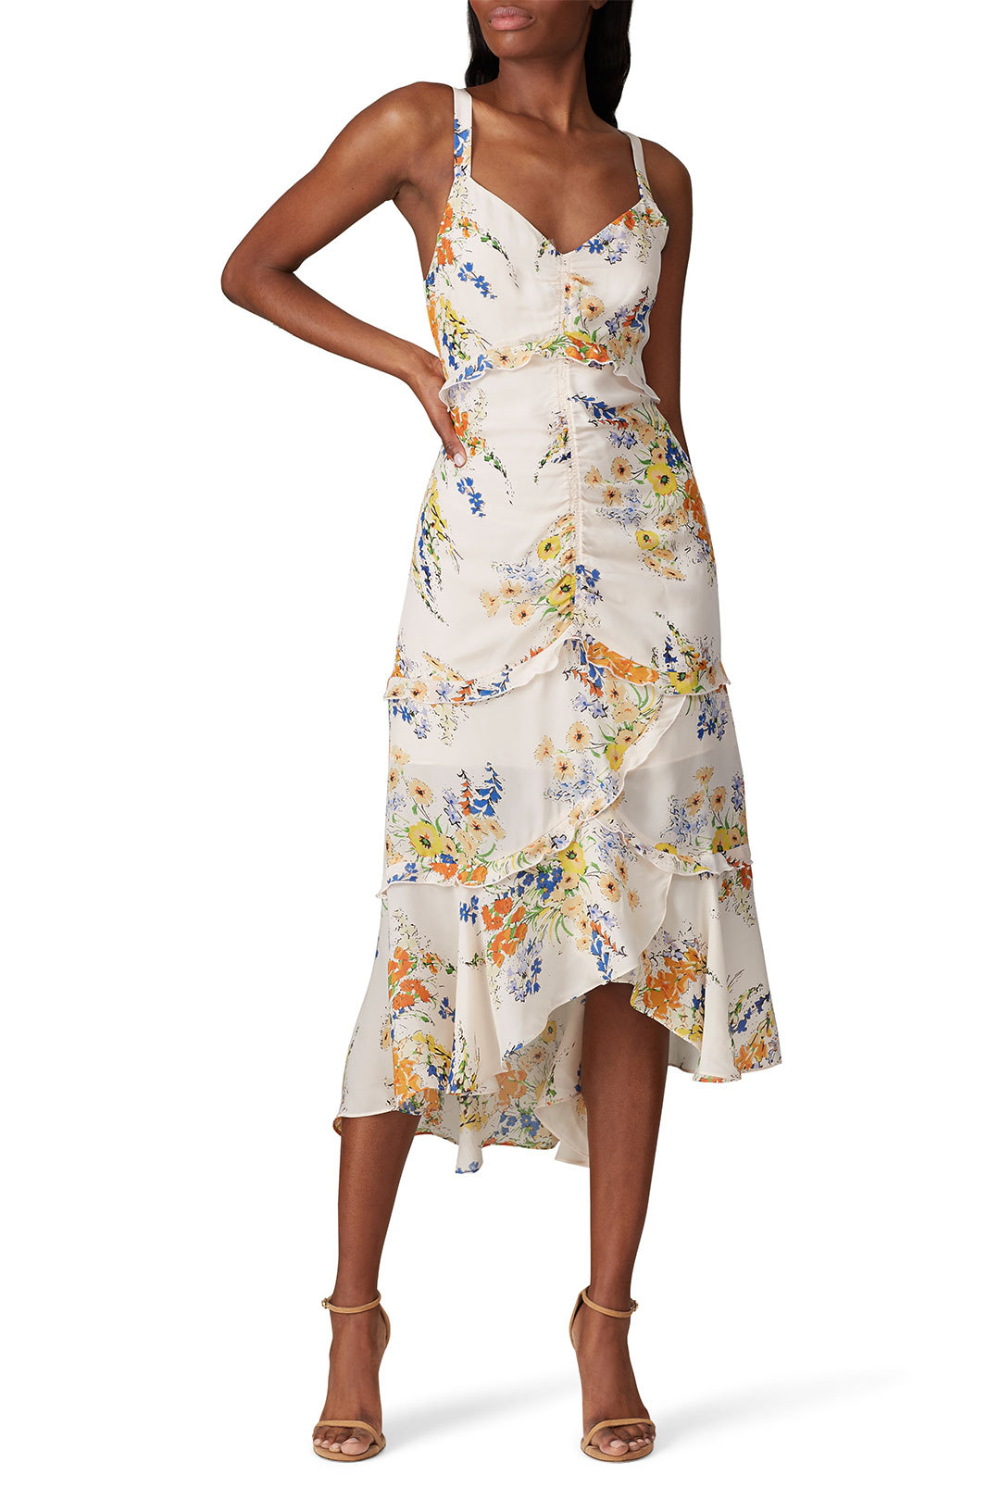 Melody Dress By Parker For 55 70 Rent The Runway Dresses Mixed Floral Dress Parker Dress